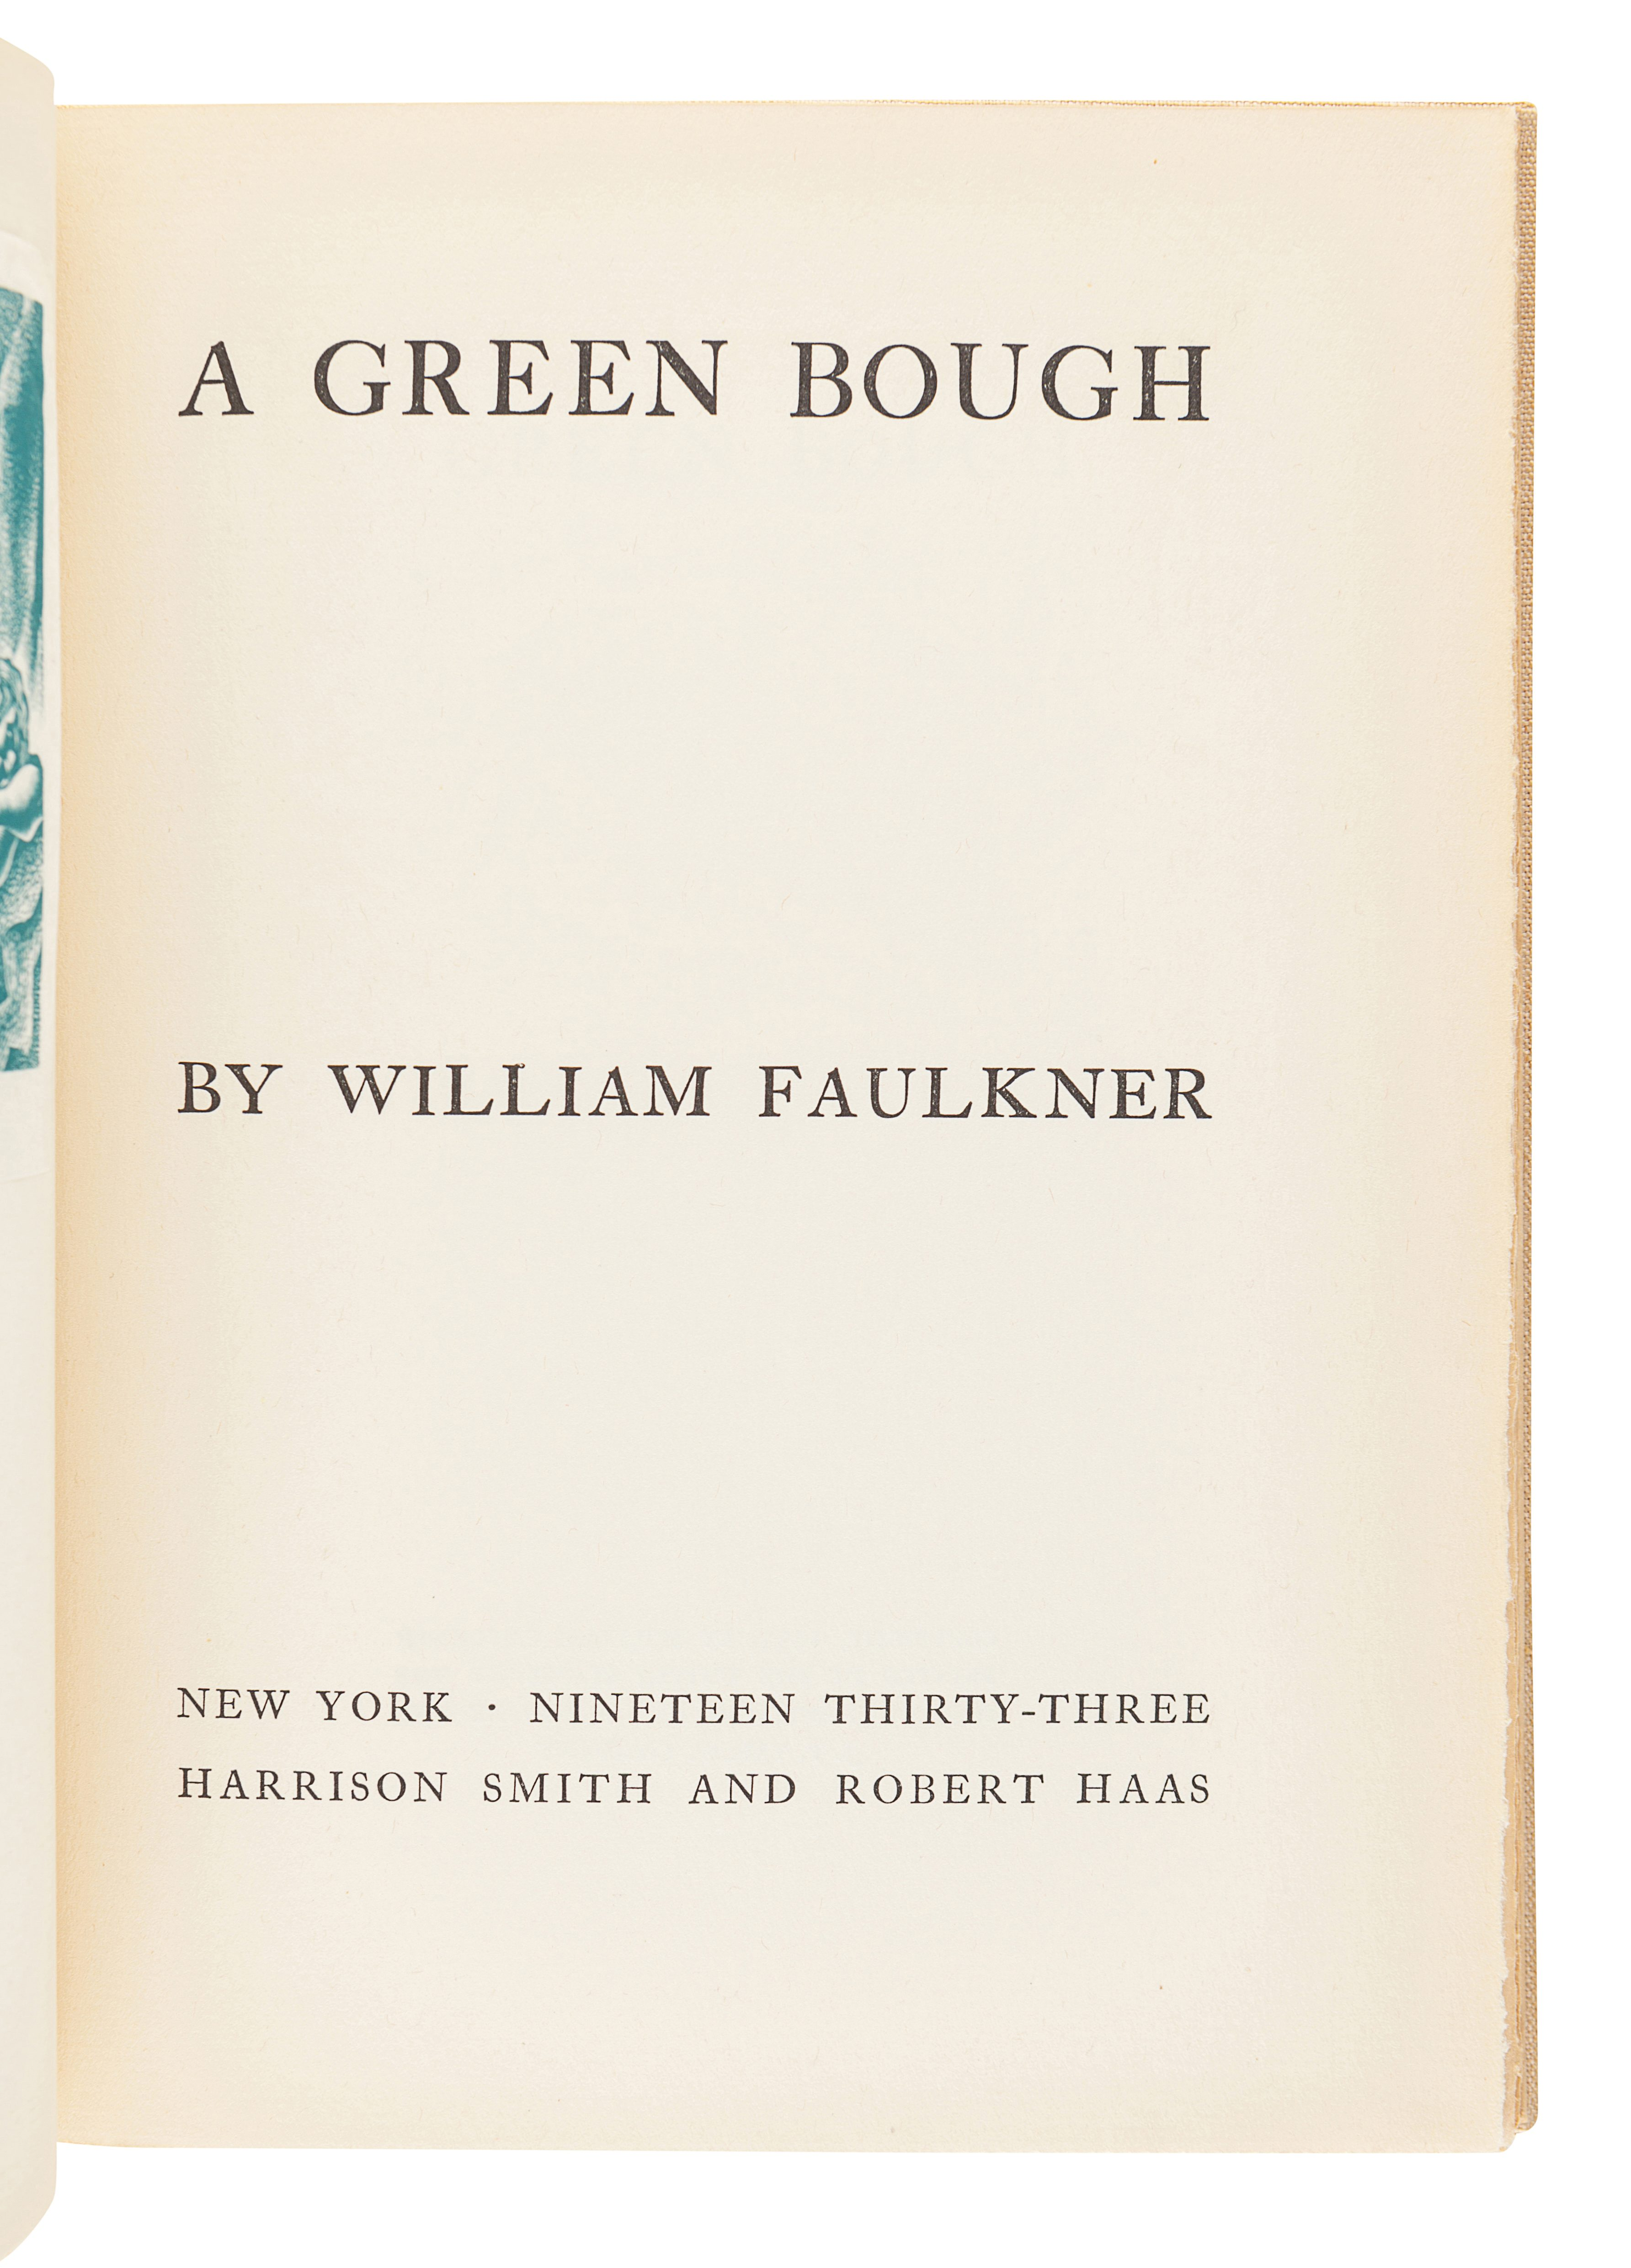 FAULKNER, William. A Green Bough. New York: Harrison Smith and Robert Haas, 1933. - Image 2 of 3